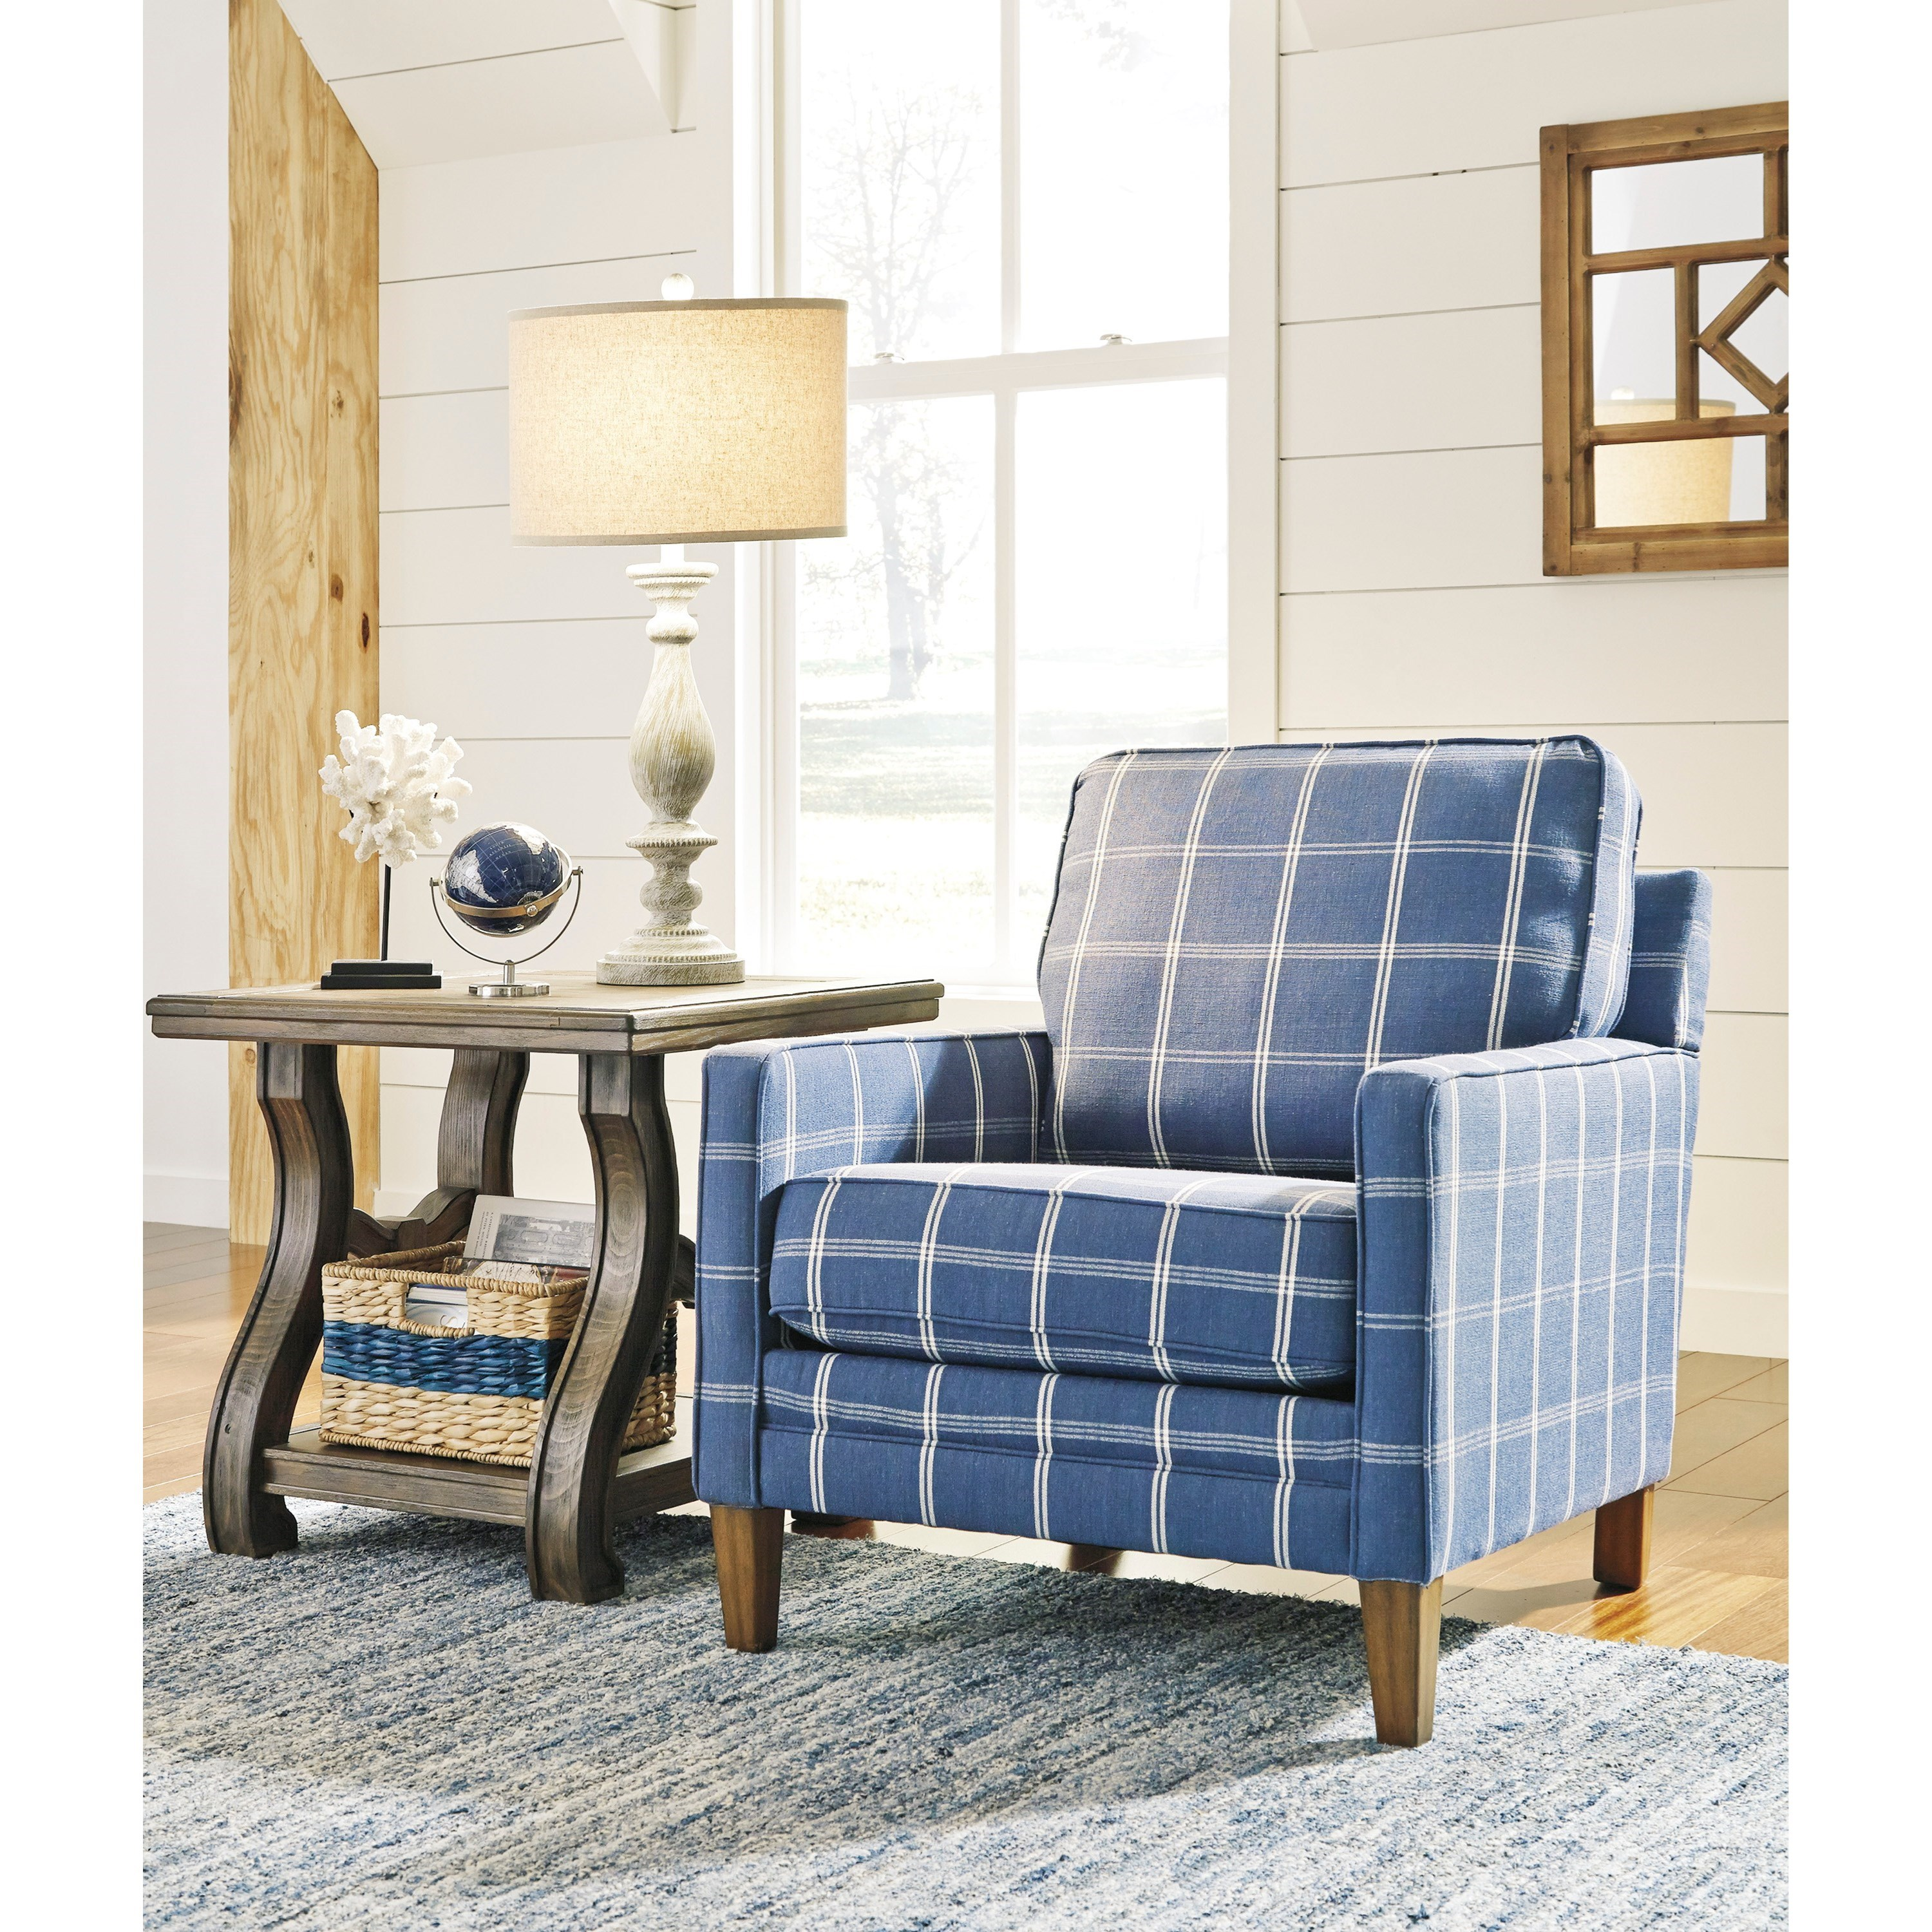 Blue Living Room Chairs Benchcraft Adderbury 1440321 Blue Plaid Accent Chair With